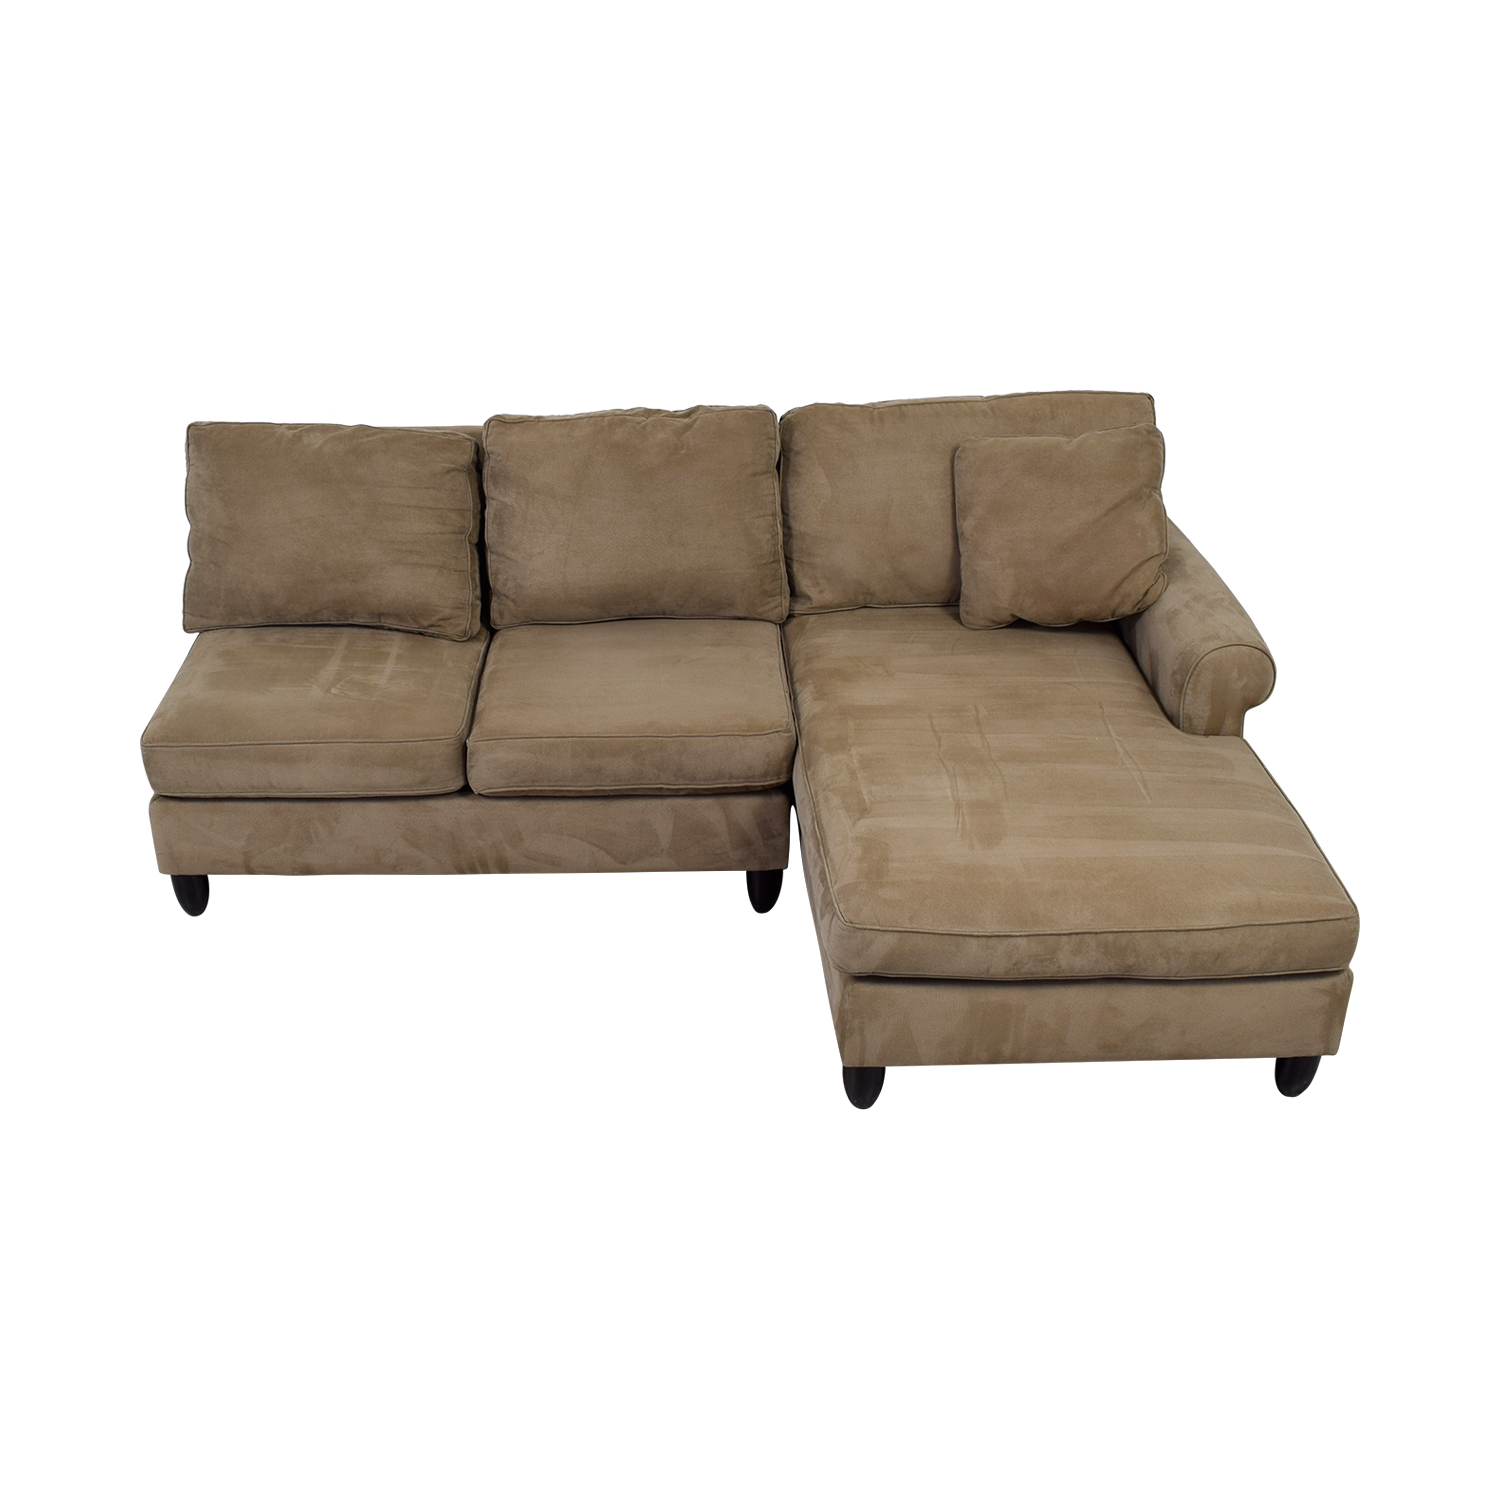 Haverty's Haverty's Tan Chaise Sectional Sofas